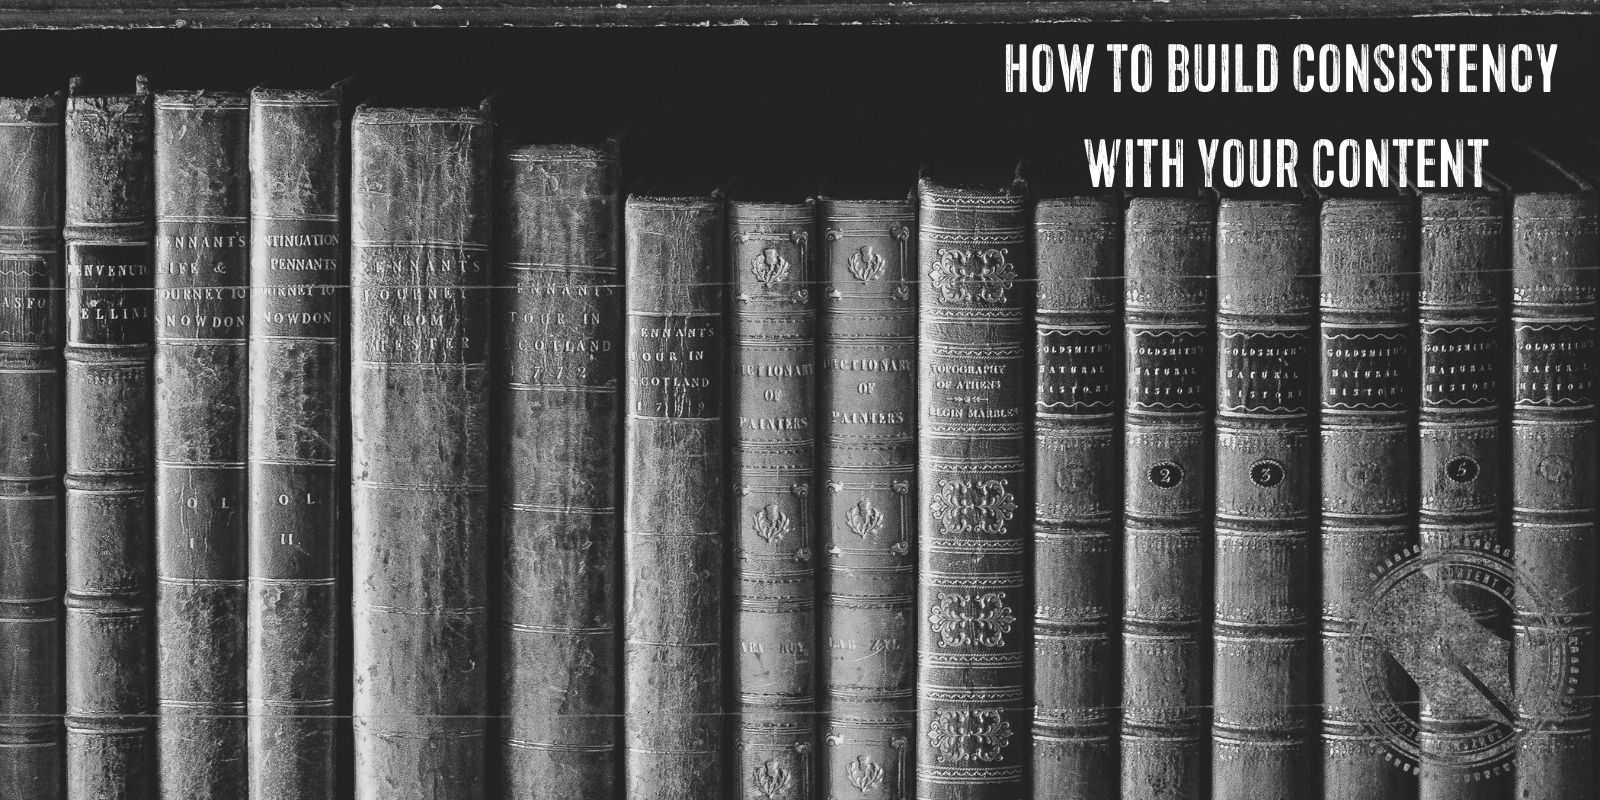 """[A black and white photo of antique books on a bookshelf. Overlaid are the words """"How to build consistency with your content"""" in a vintage distressed font]"""